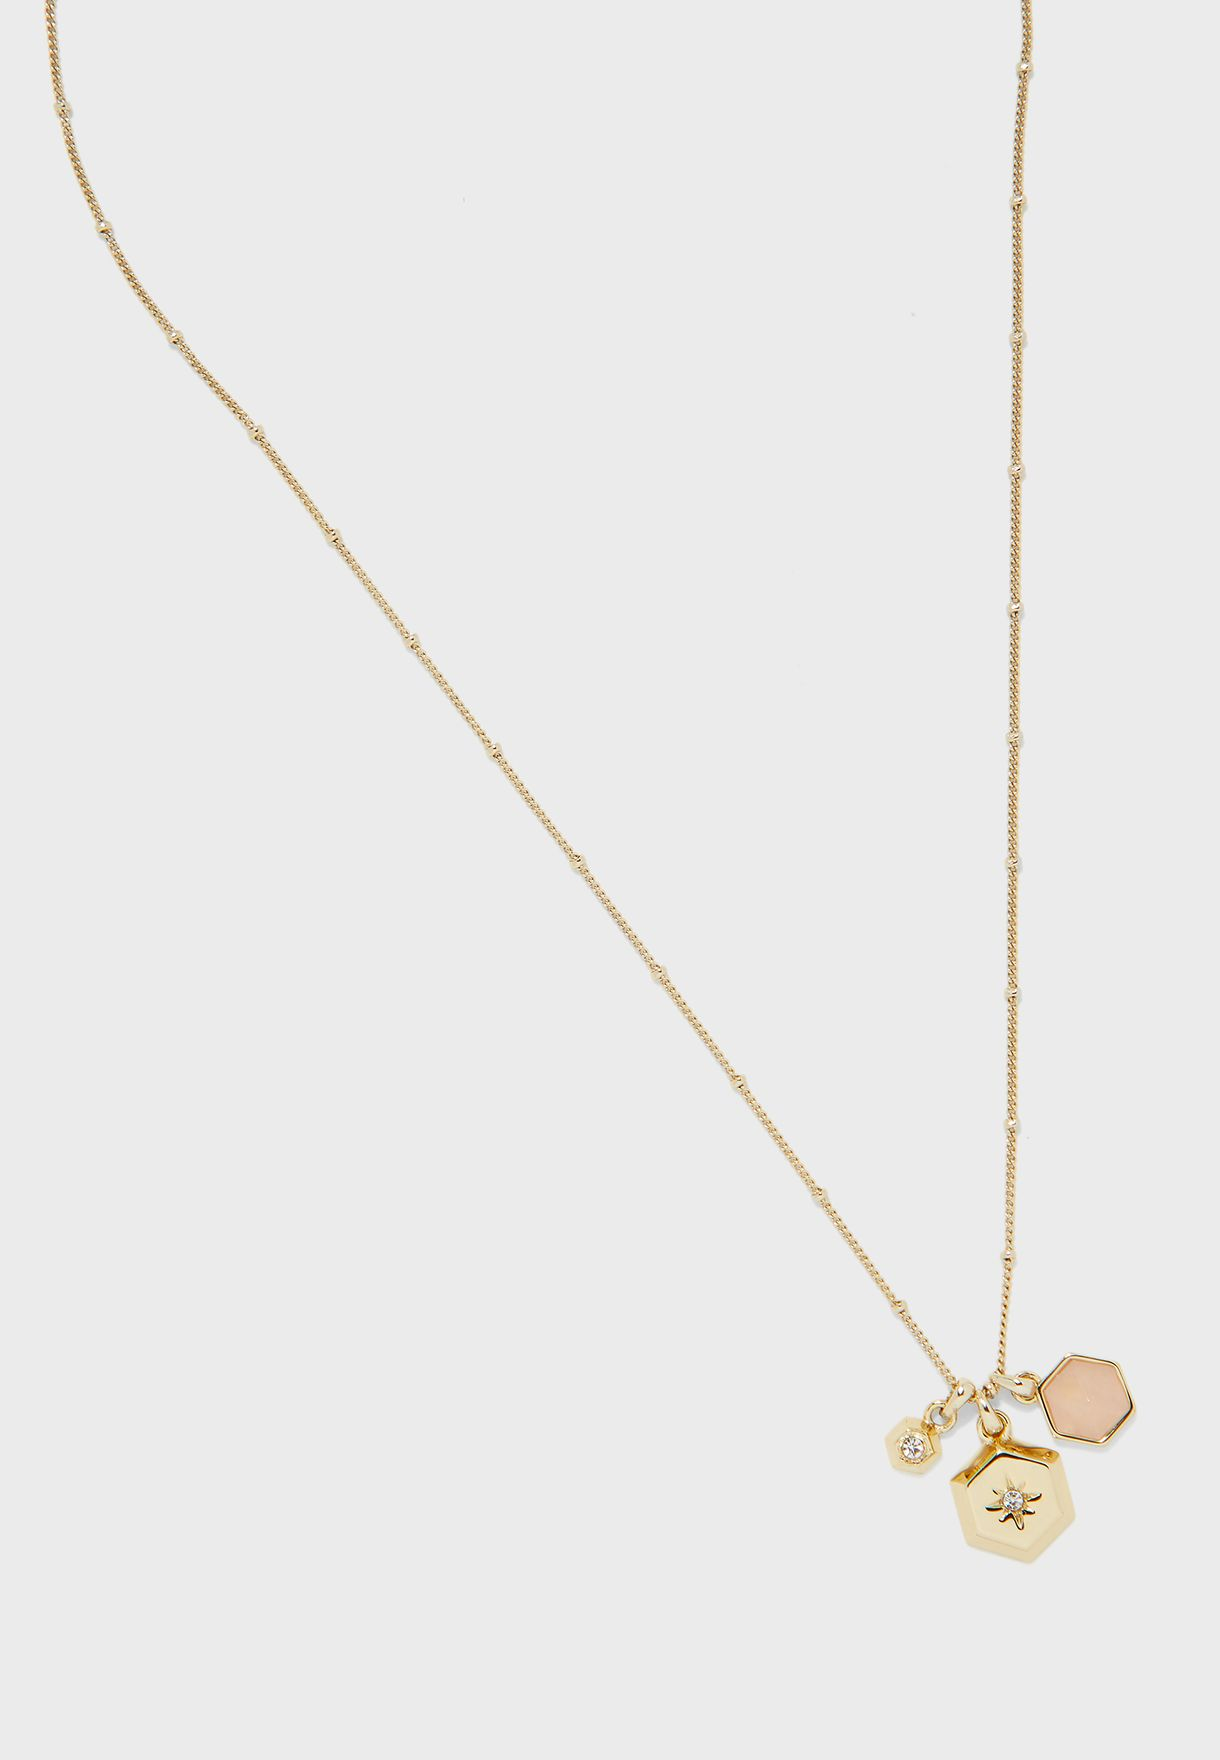 Muse Cluster Pendant Necklace